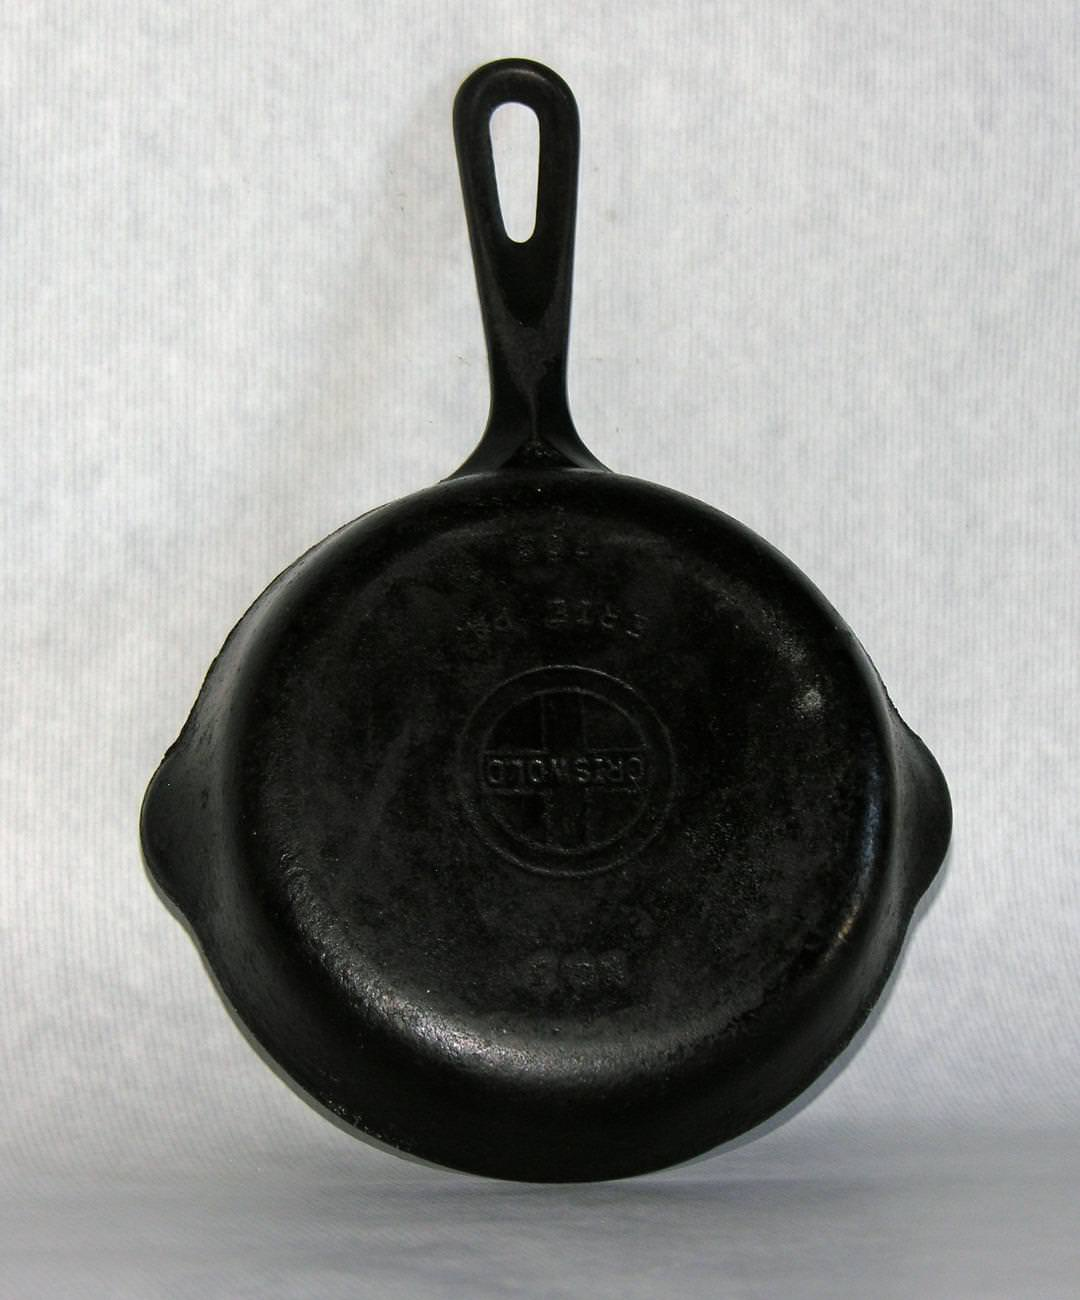 Image of: Antique Cast Iron Skillet Care